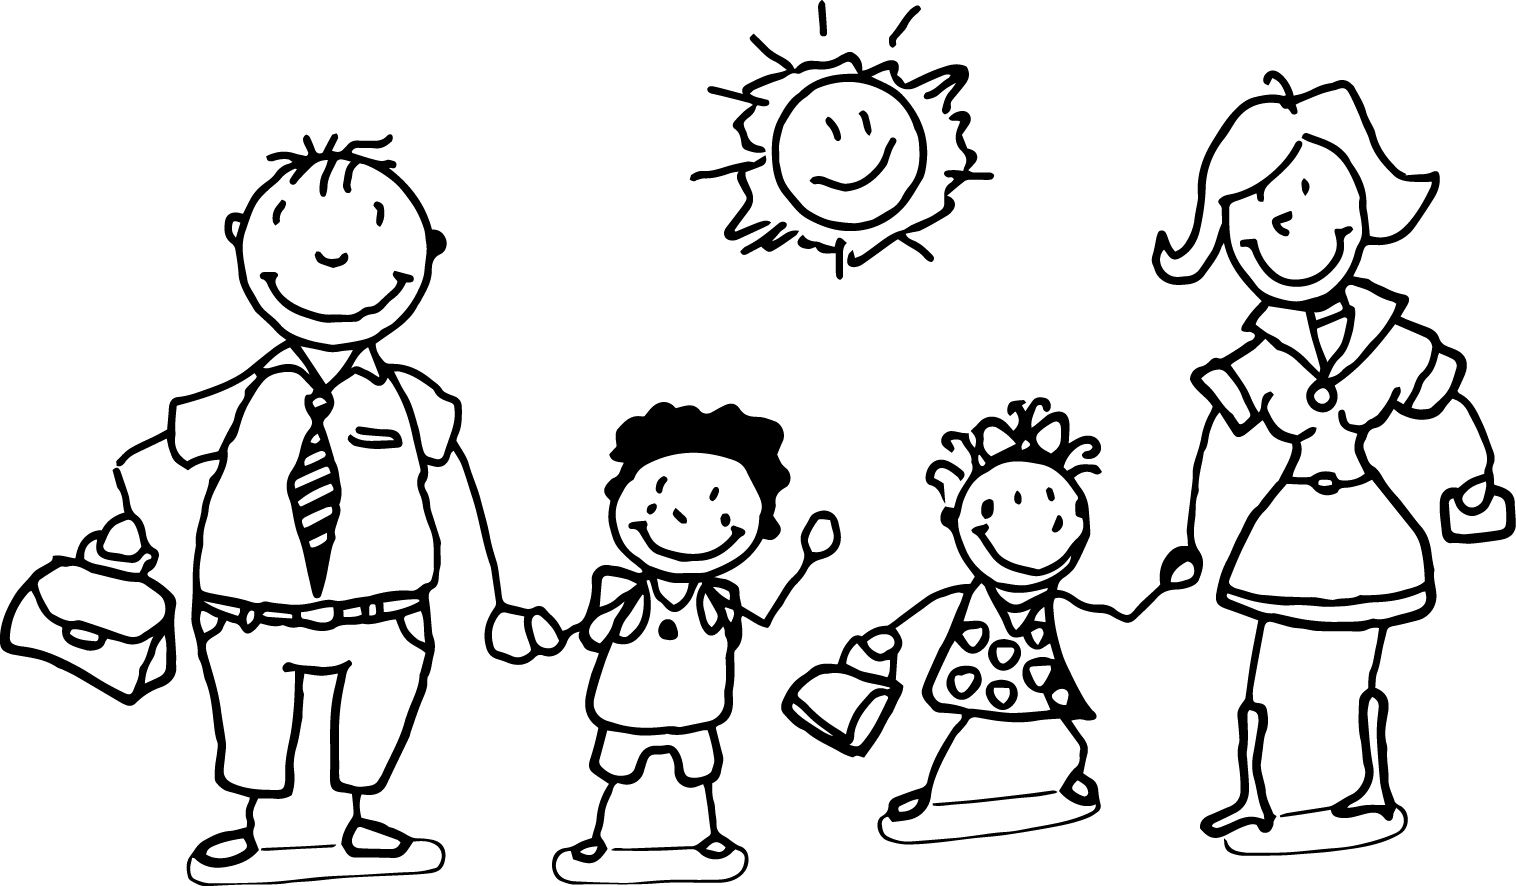 family printable coloring pages - photo#17